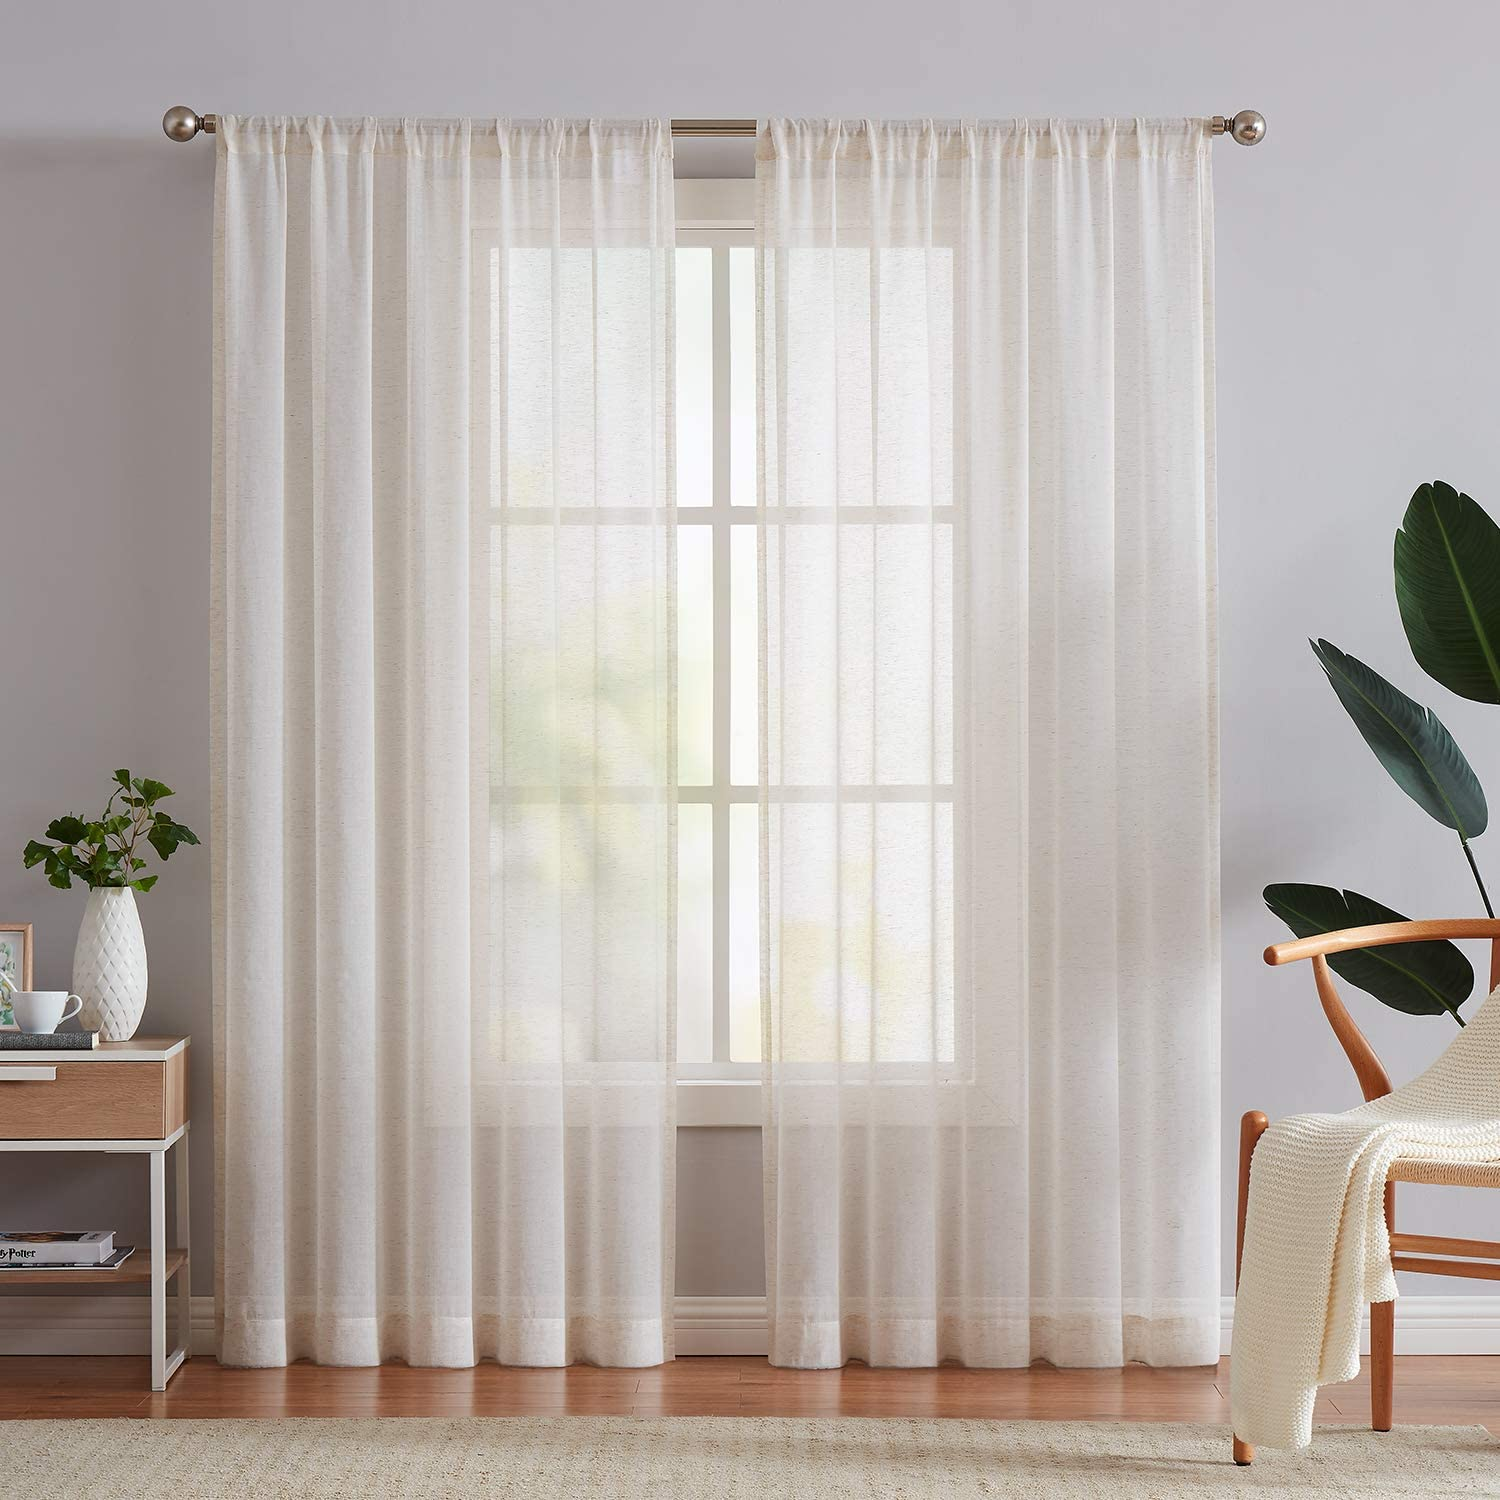 Amazon Com Fmfunctex Linen Flax Sheer Curtain Panels 96 Long Living Room Retro Window Draperies For Bedroom Rod Pocket Sheers 52 Wide X 2 Pack Natural Home Kitchen